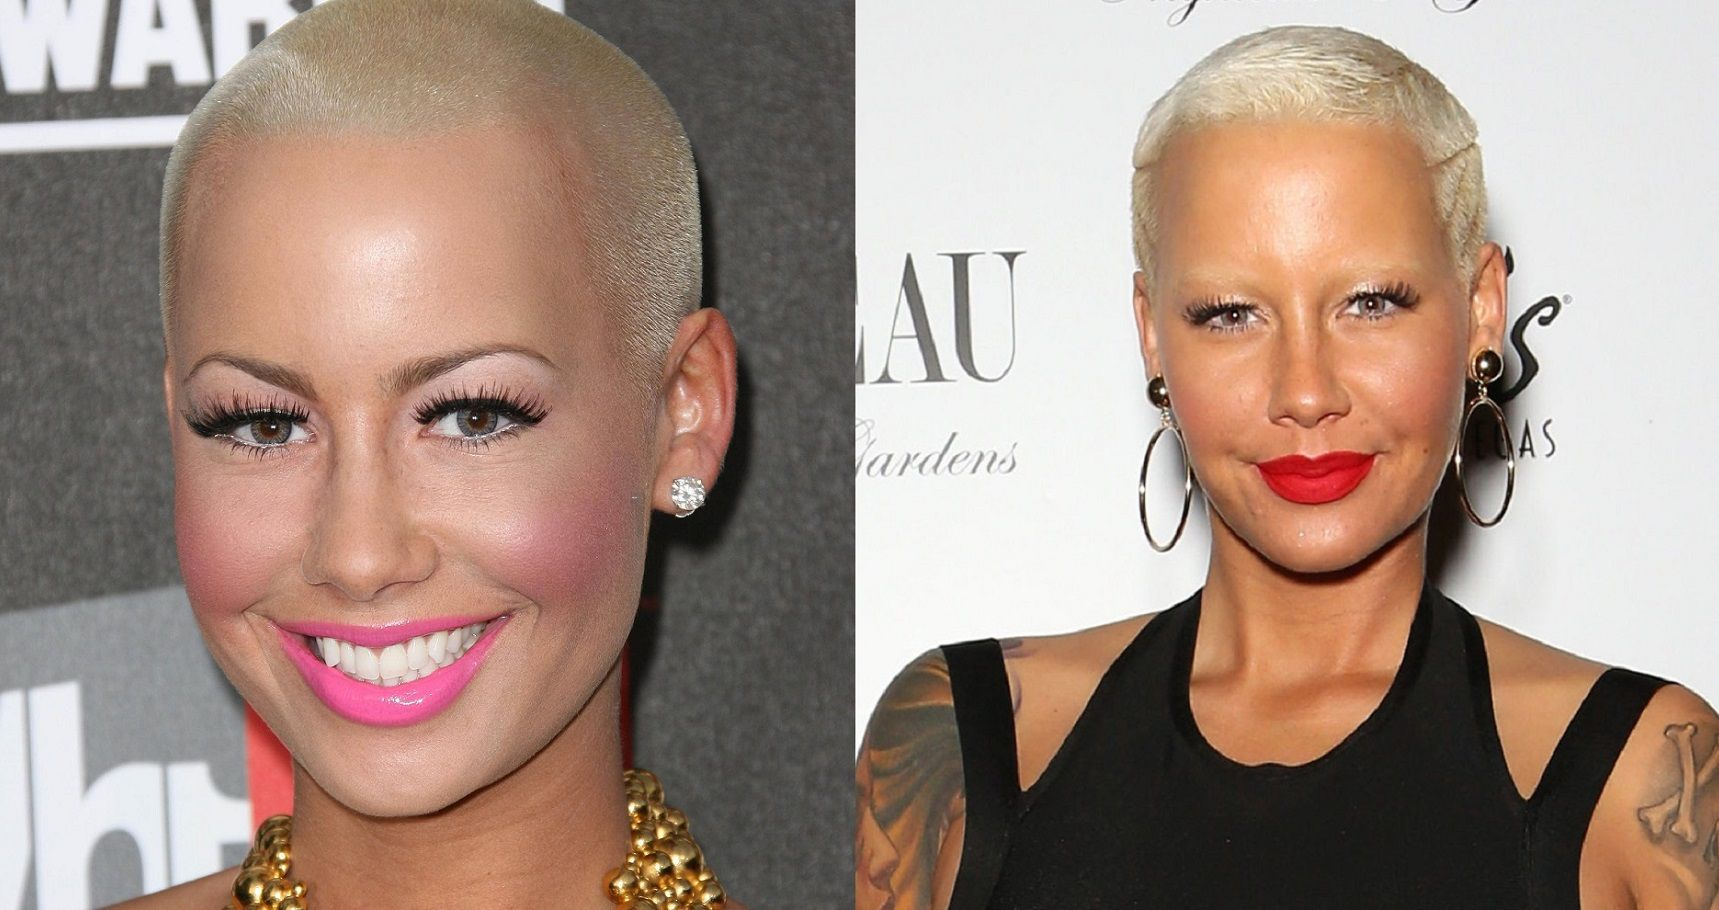 10 Celebrities Who Messed Up Their Eyebrows